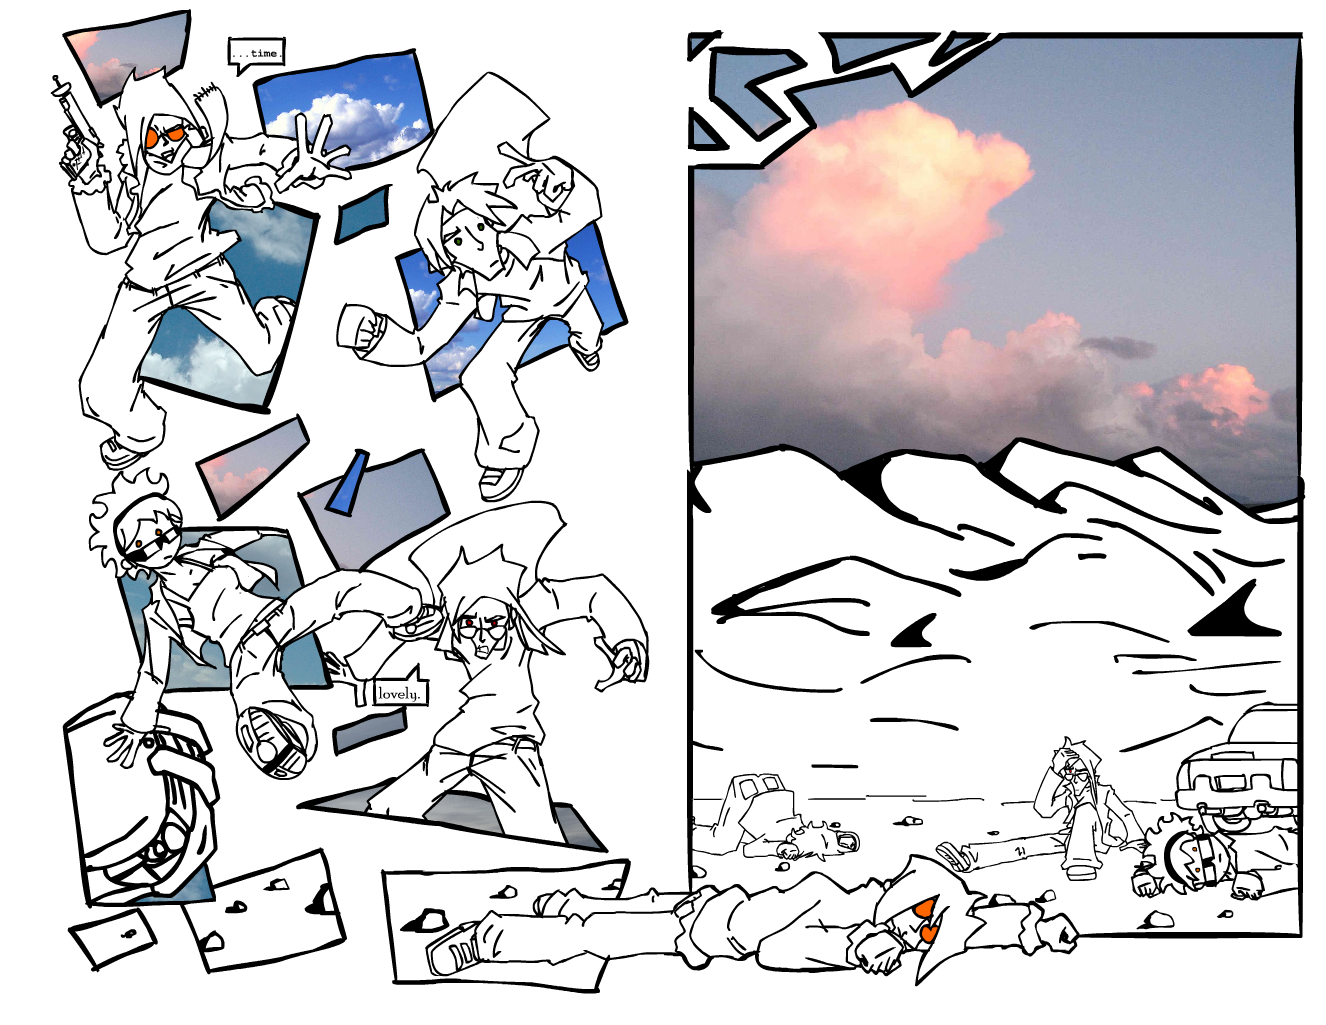 Pages 8 and 9 together at last!